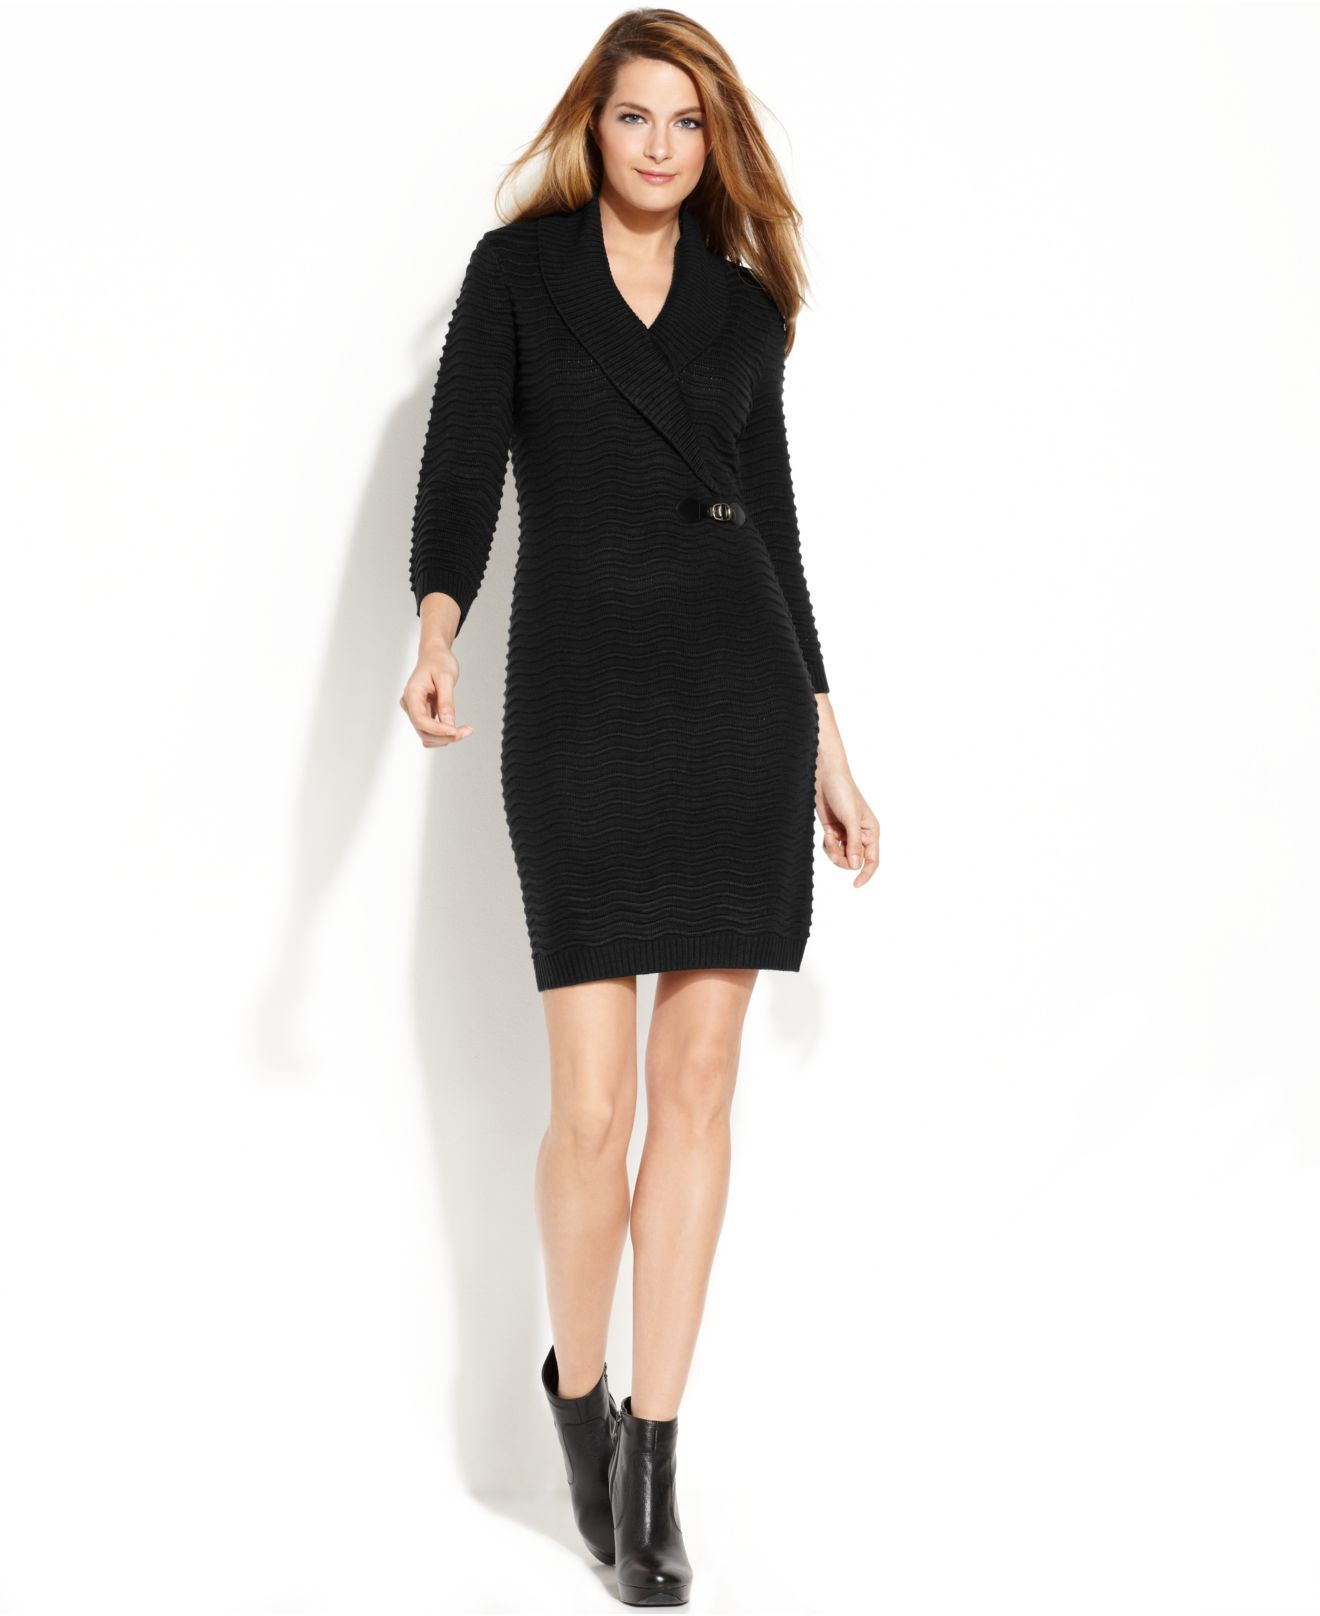 aaeccd1a5a Calvin Klein Textured Knit Sweater Dress in Black - Lyst